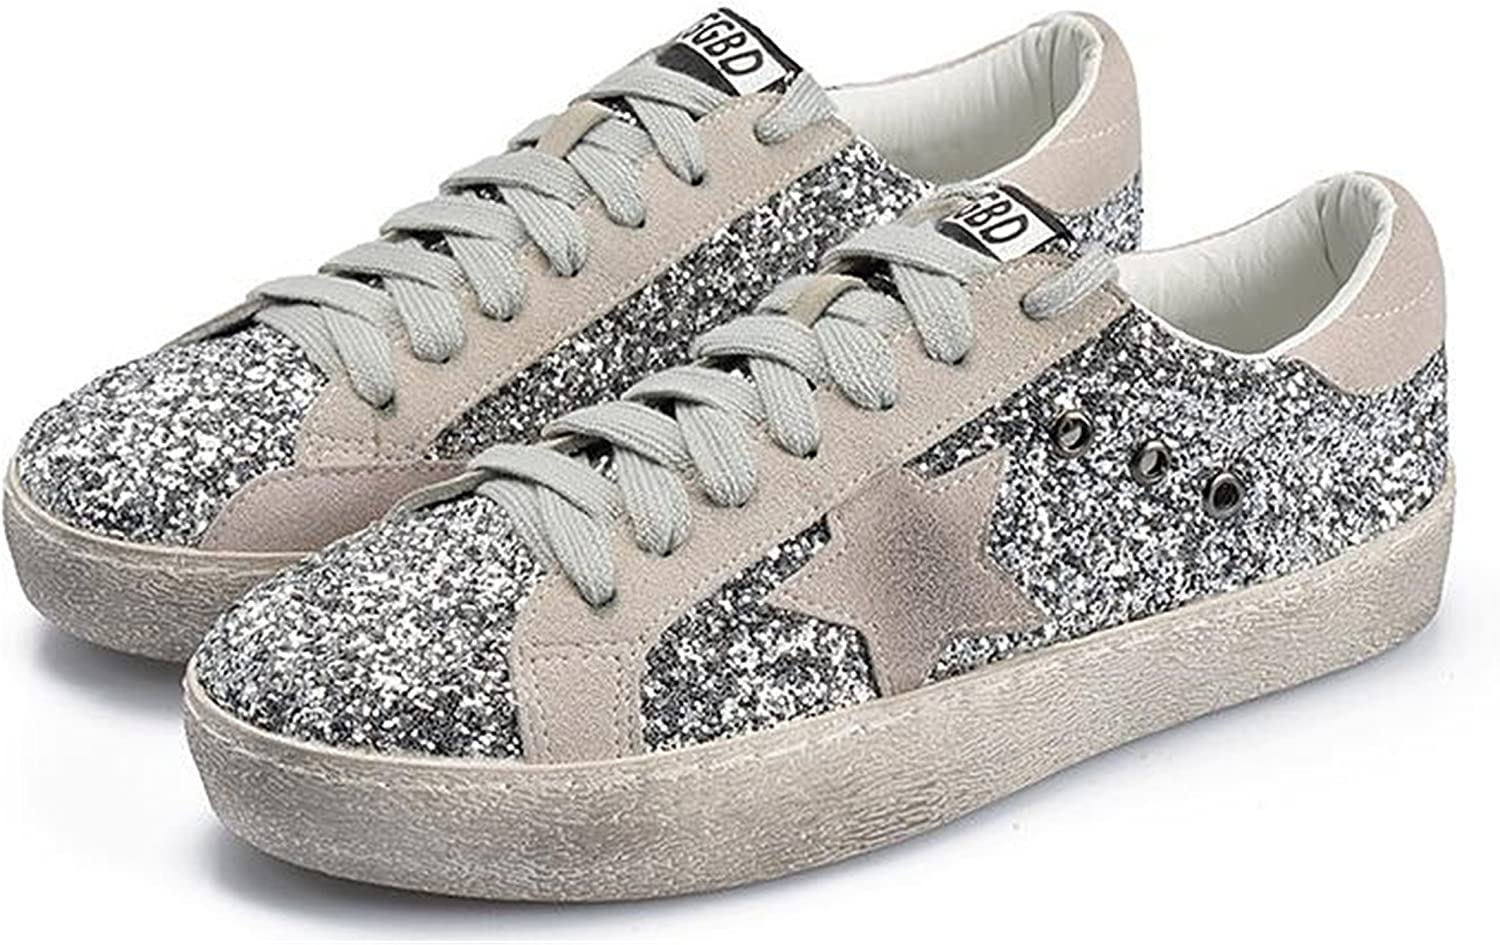 Henraly shoes Glitter Leather Do Old Dirty shoes Mixed color Women Sequins Star golden Fleeces Trainers